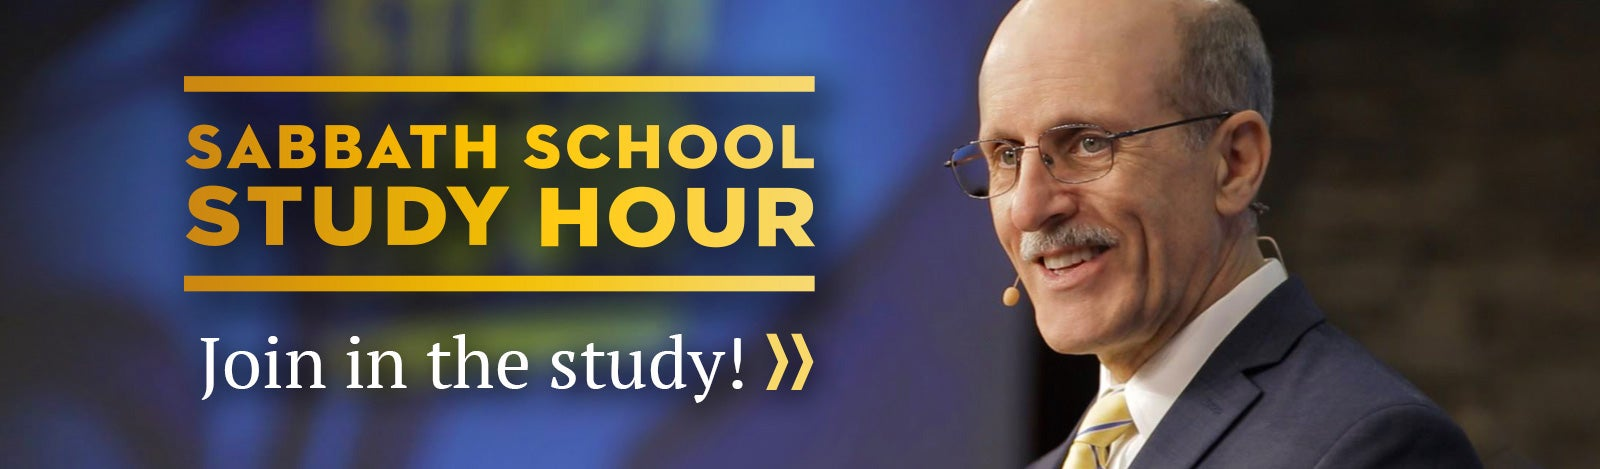 Sabbath School Study Hour